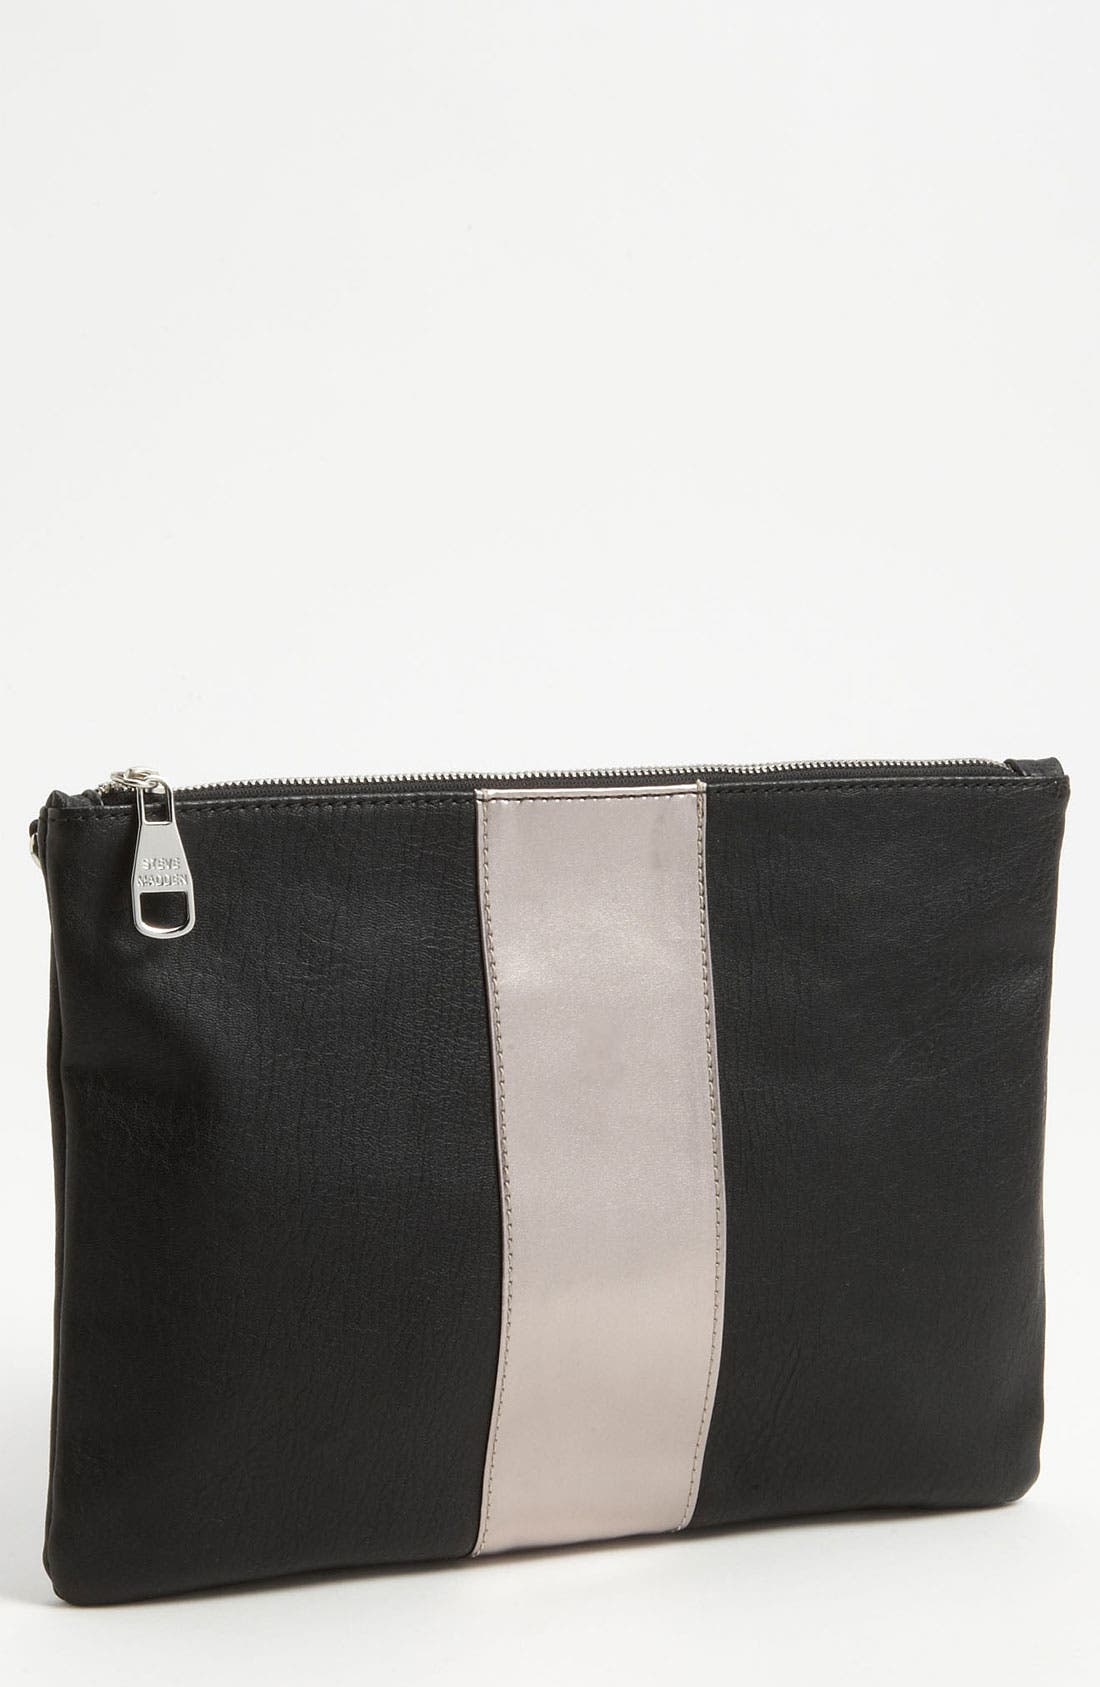 Steve Madden 'Stylarr' Clutch, Main, color, 001